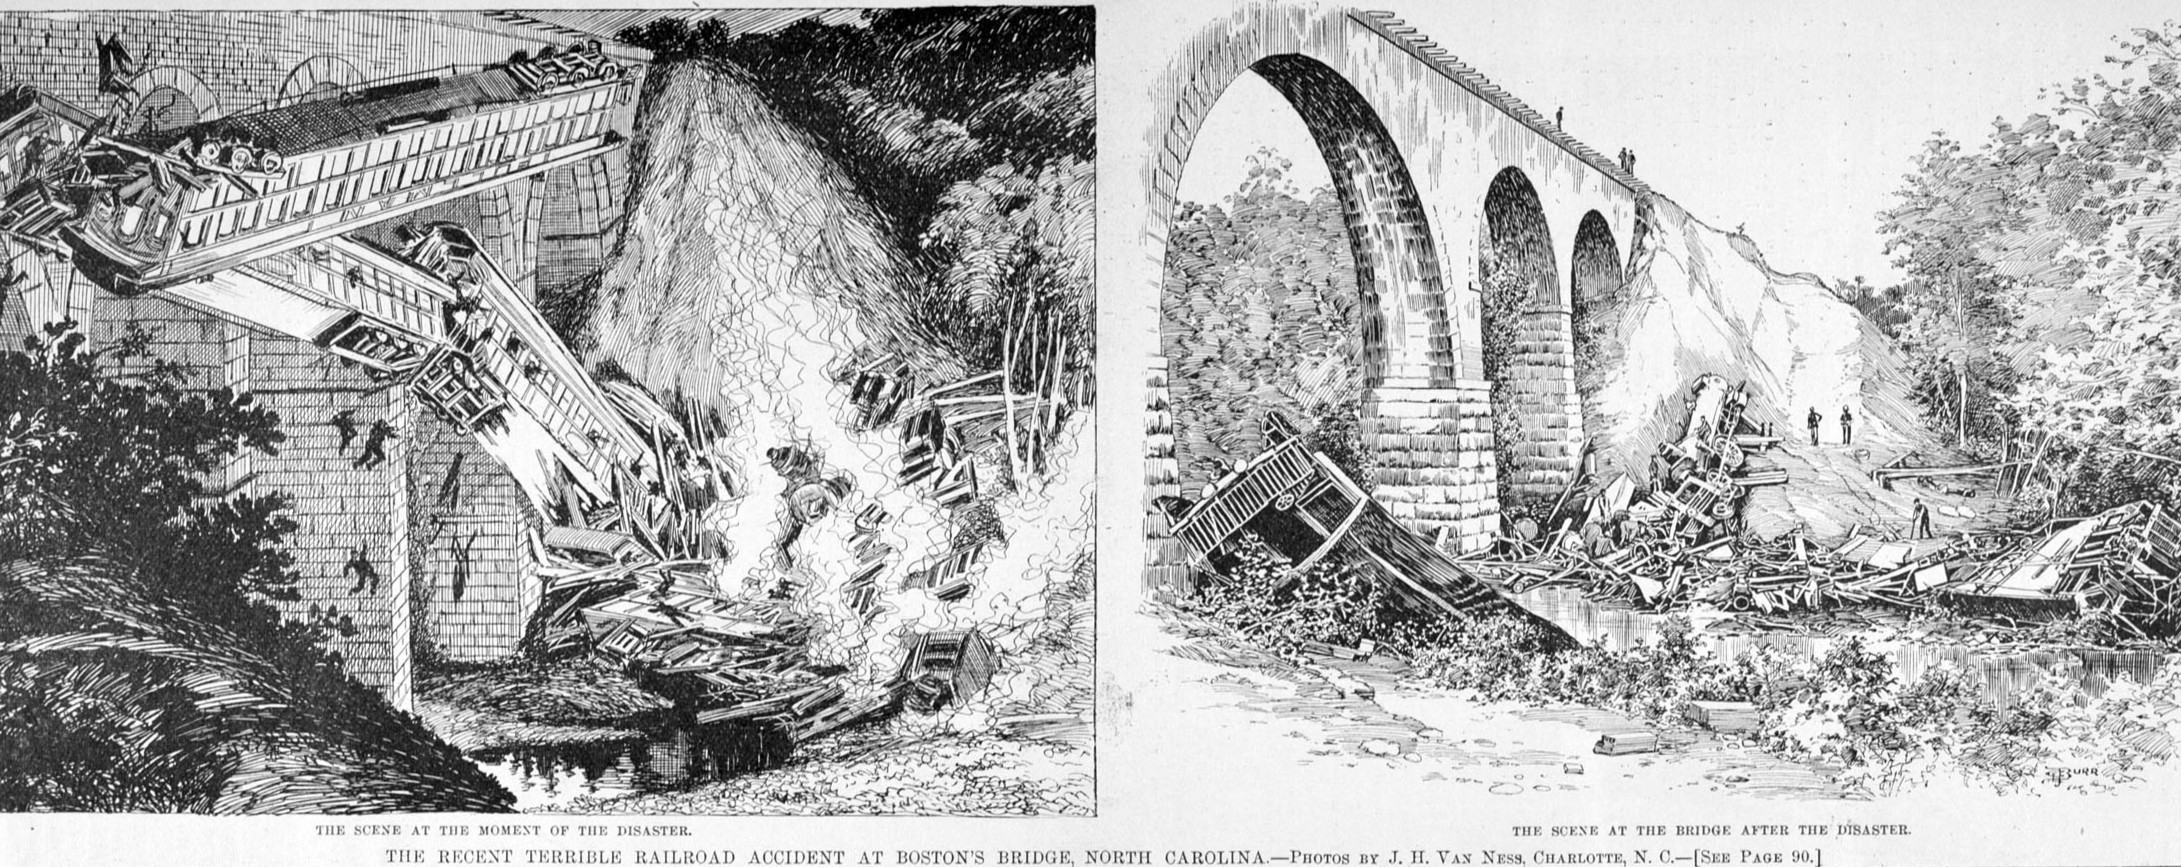 An illustration of the disaster